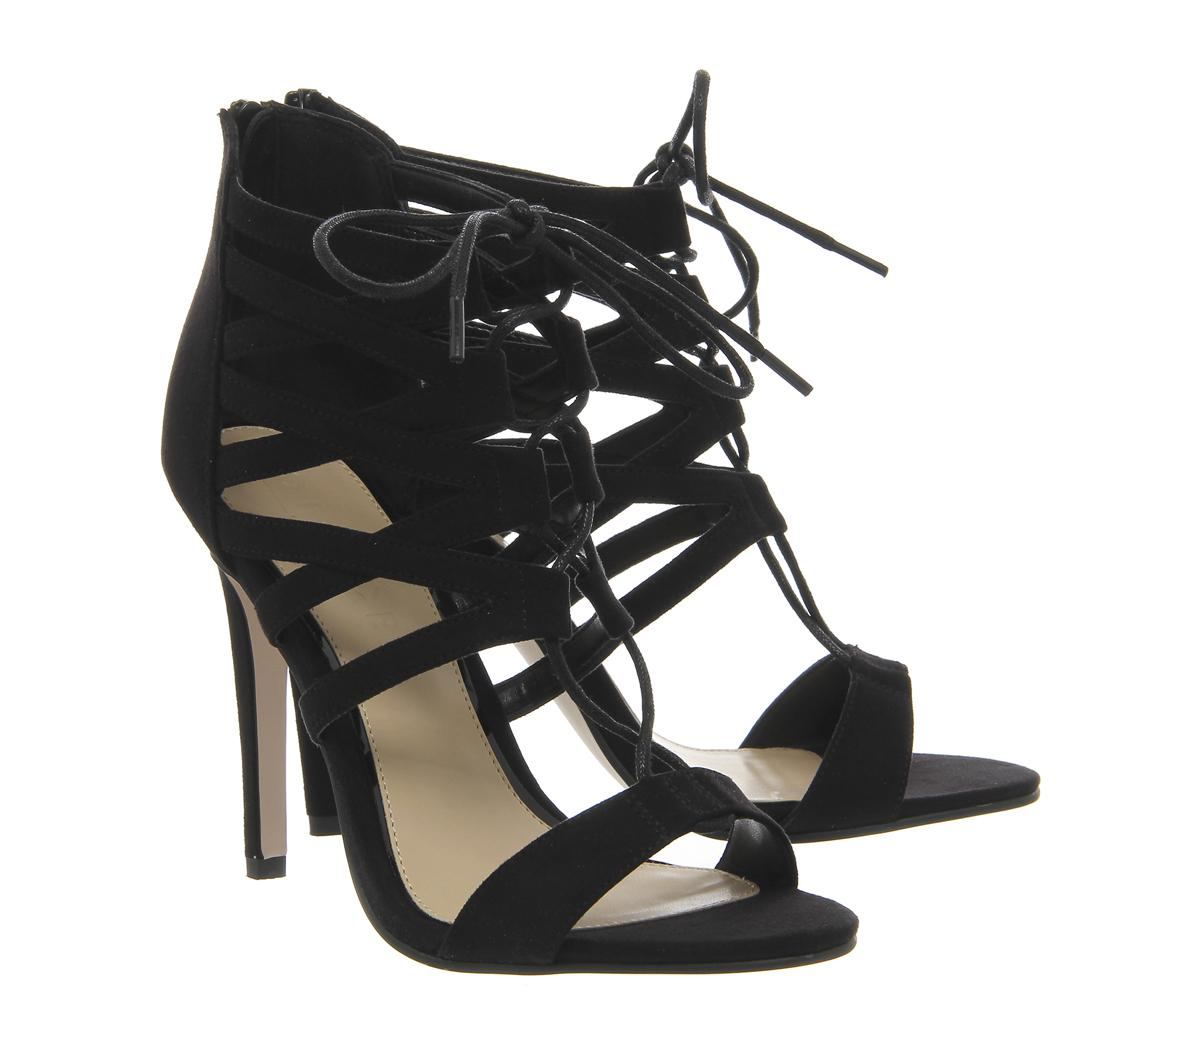 86b39e14af9 Lyst - Office Popsicle Lace Up Strappy Heels in Black